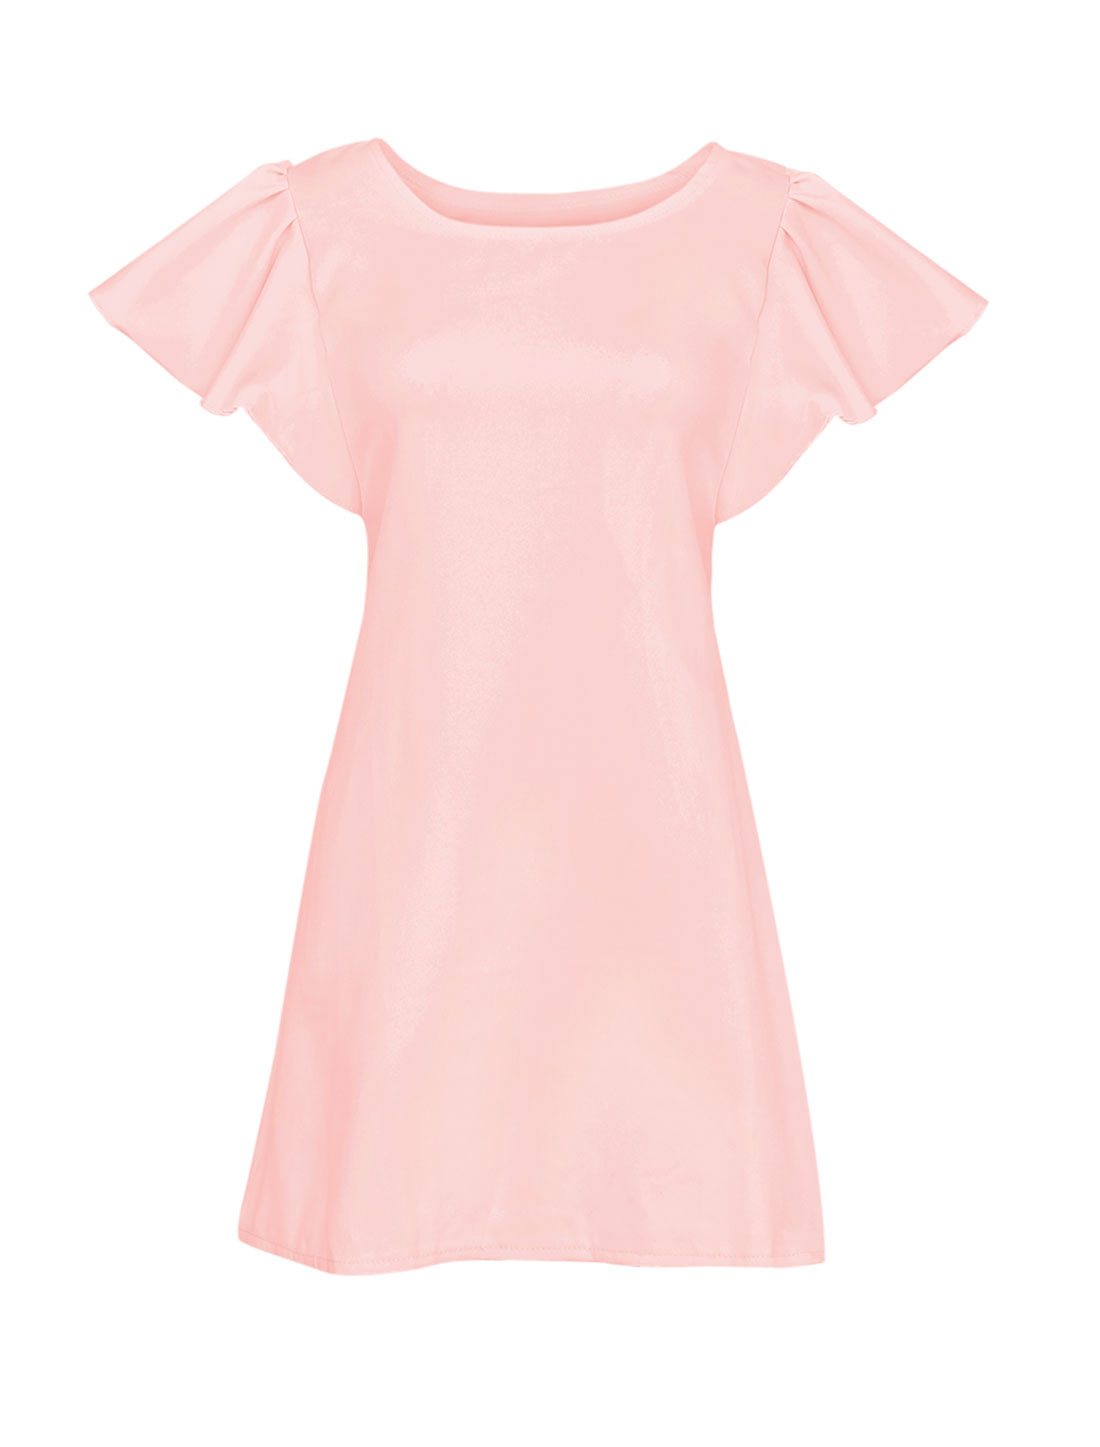 Women Pullover Round Neck Short Flouncing Sleeve Dress Pink XS